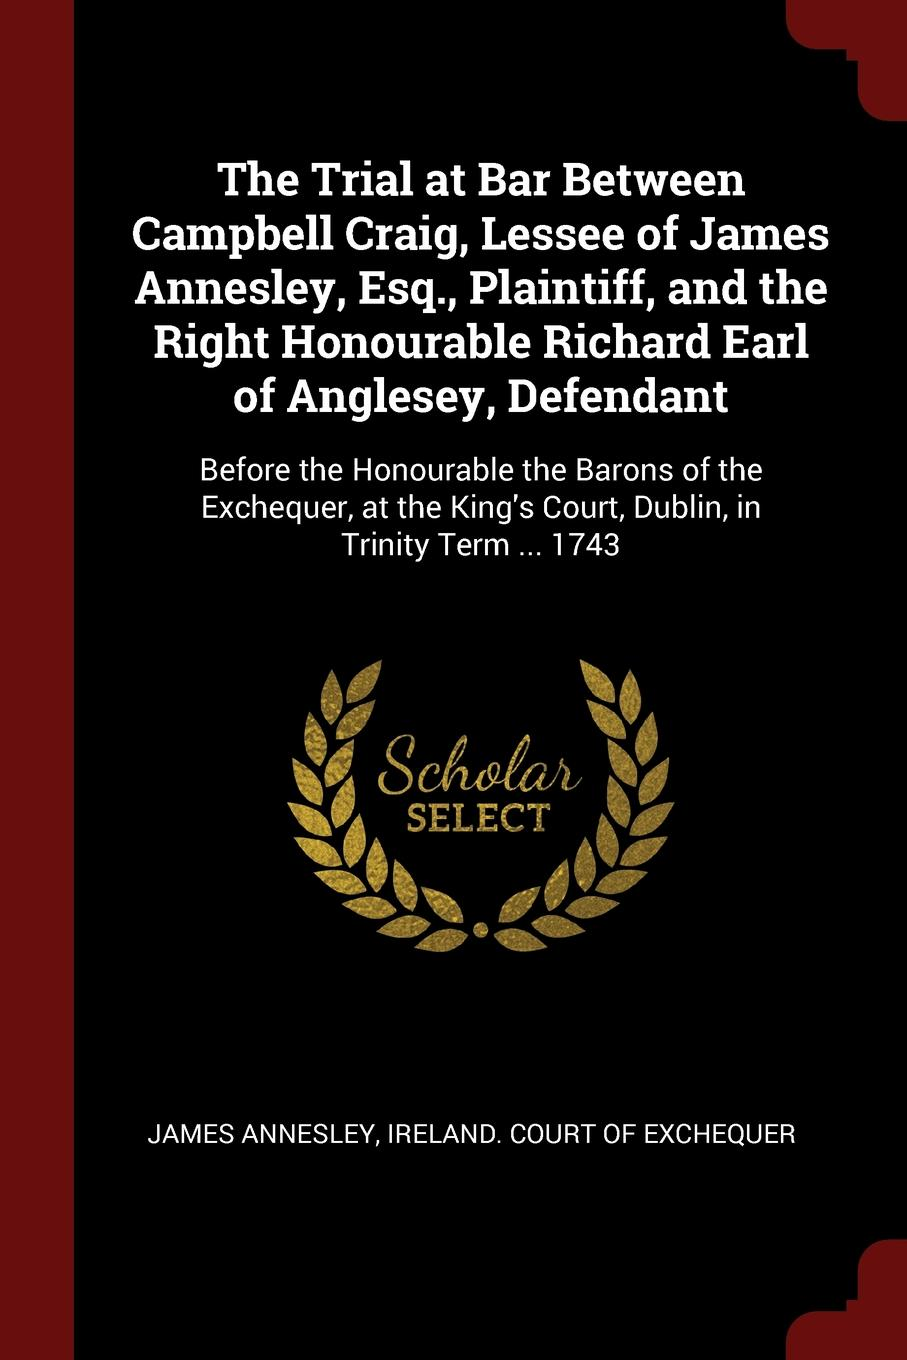 The Trial at Bar Between Campbell Craig, Lessee of James Annesley, Esq., Plaintiff, and the Right Honourable Richard Earl of Anglesey, Defendant. Before the Honourable the Barons of the Exchequer, at the King.s Court, Dublin, in Trinity Term ... 1743. James Annesley